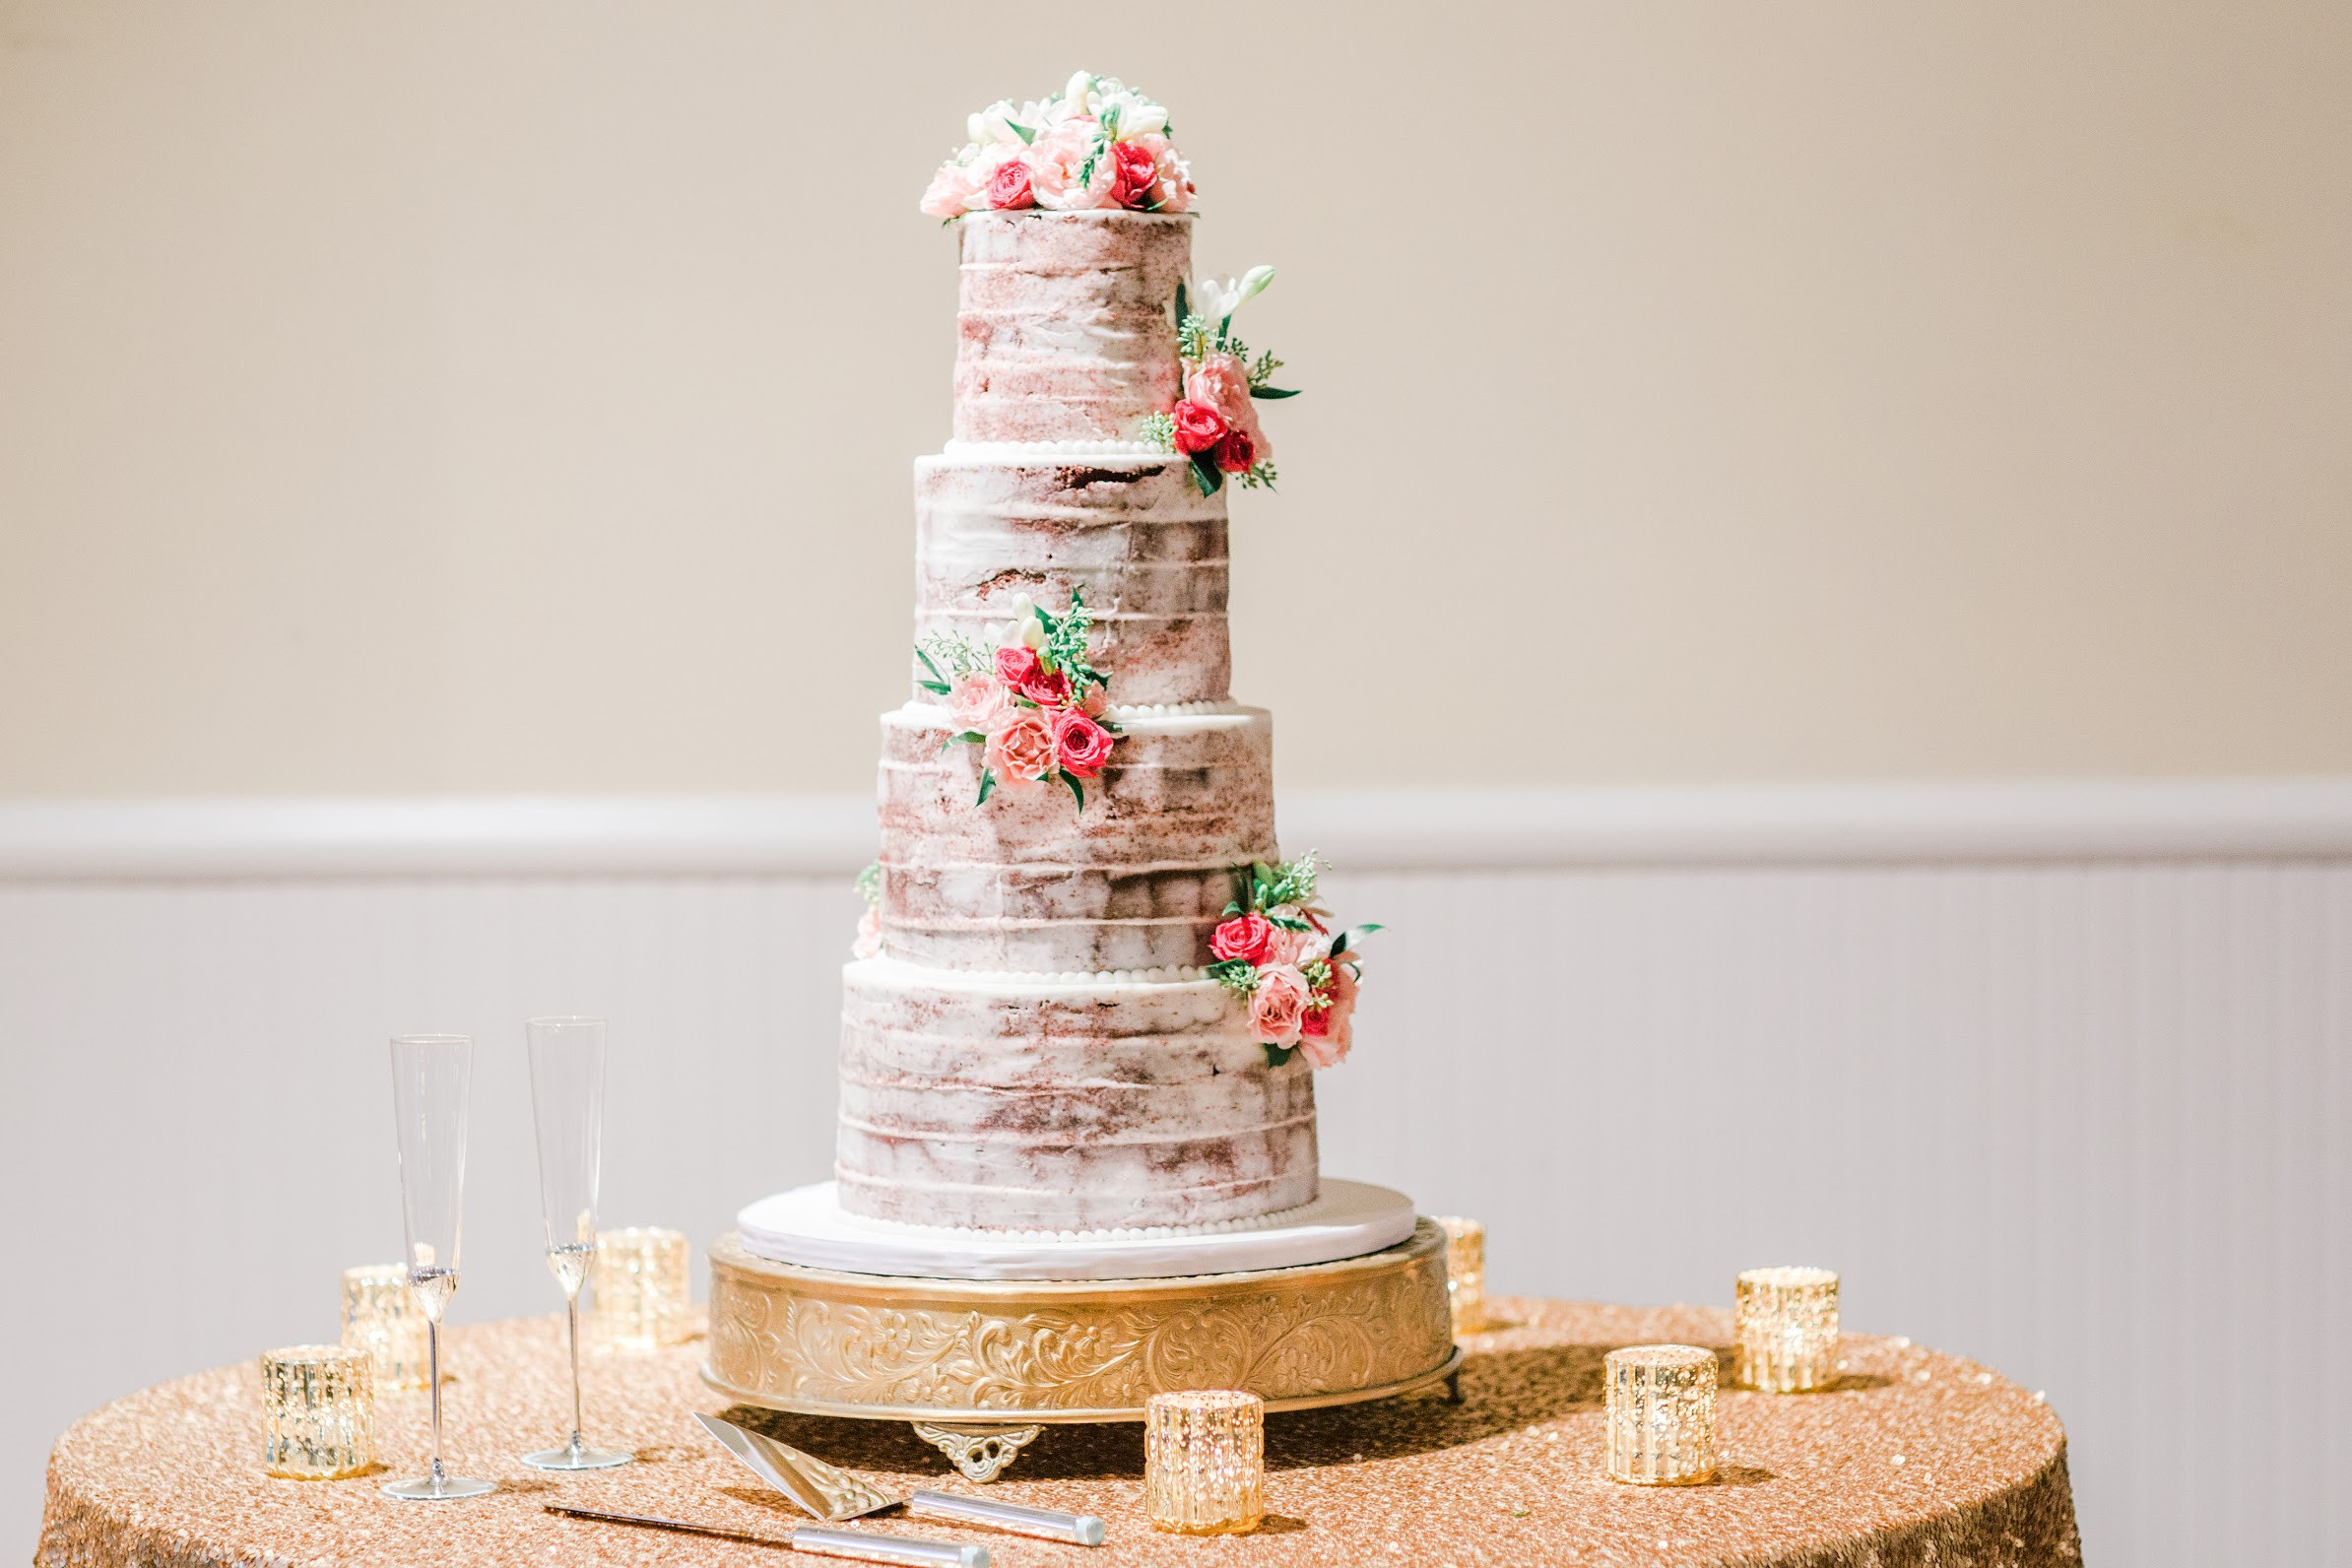 Bakery Wedding Cakes  Best Southern Wedding Cake BakeriesDraper James Blog